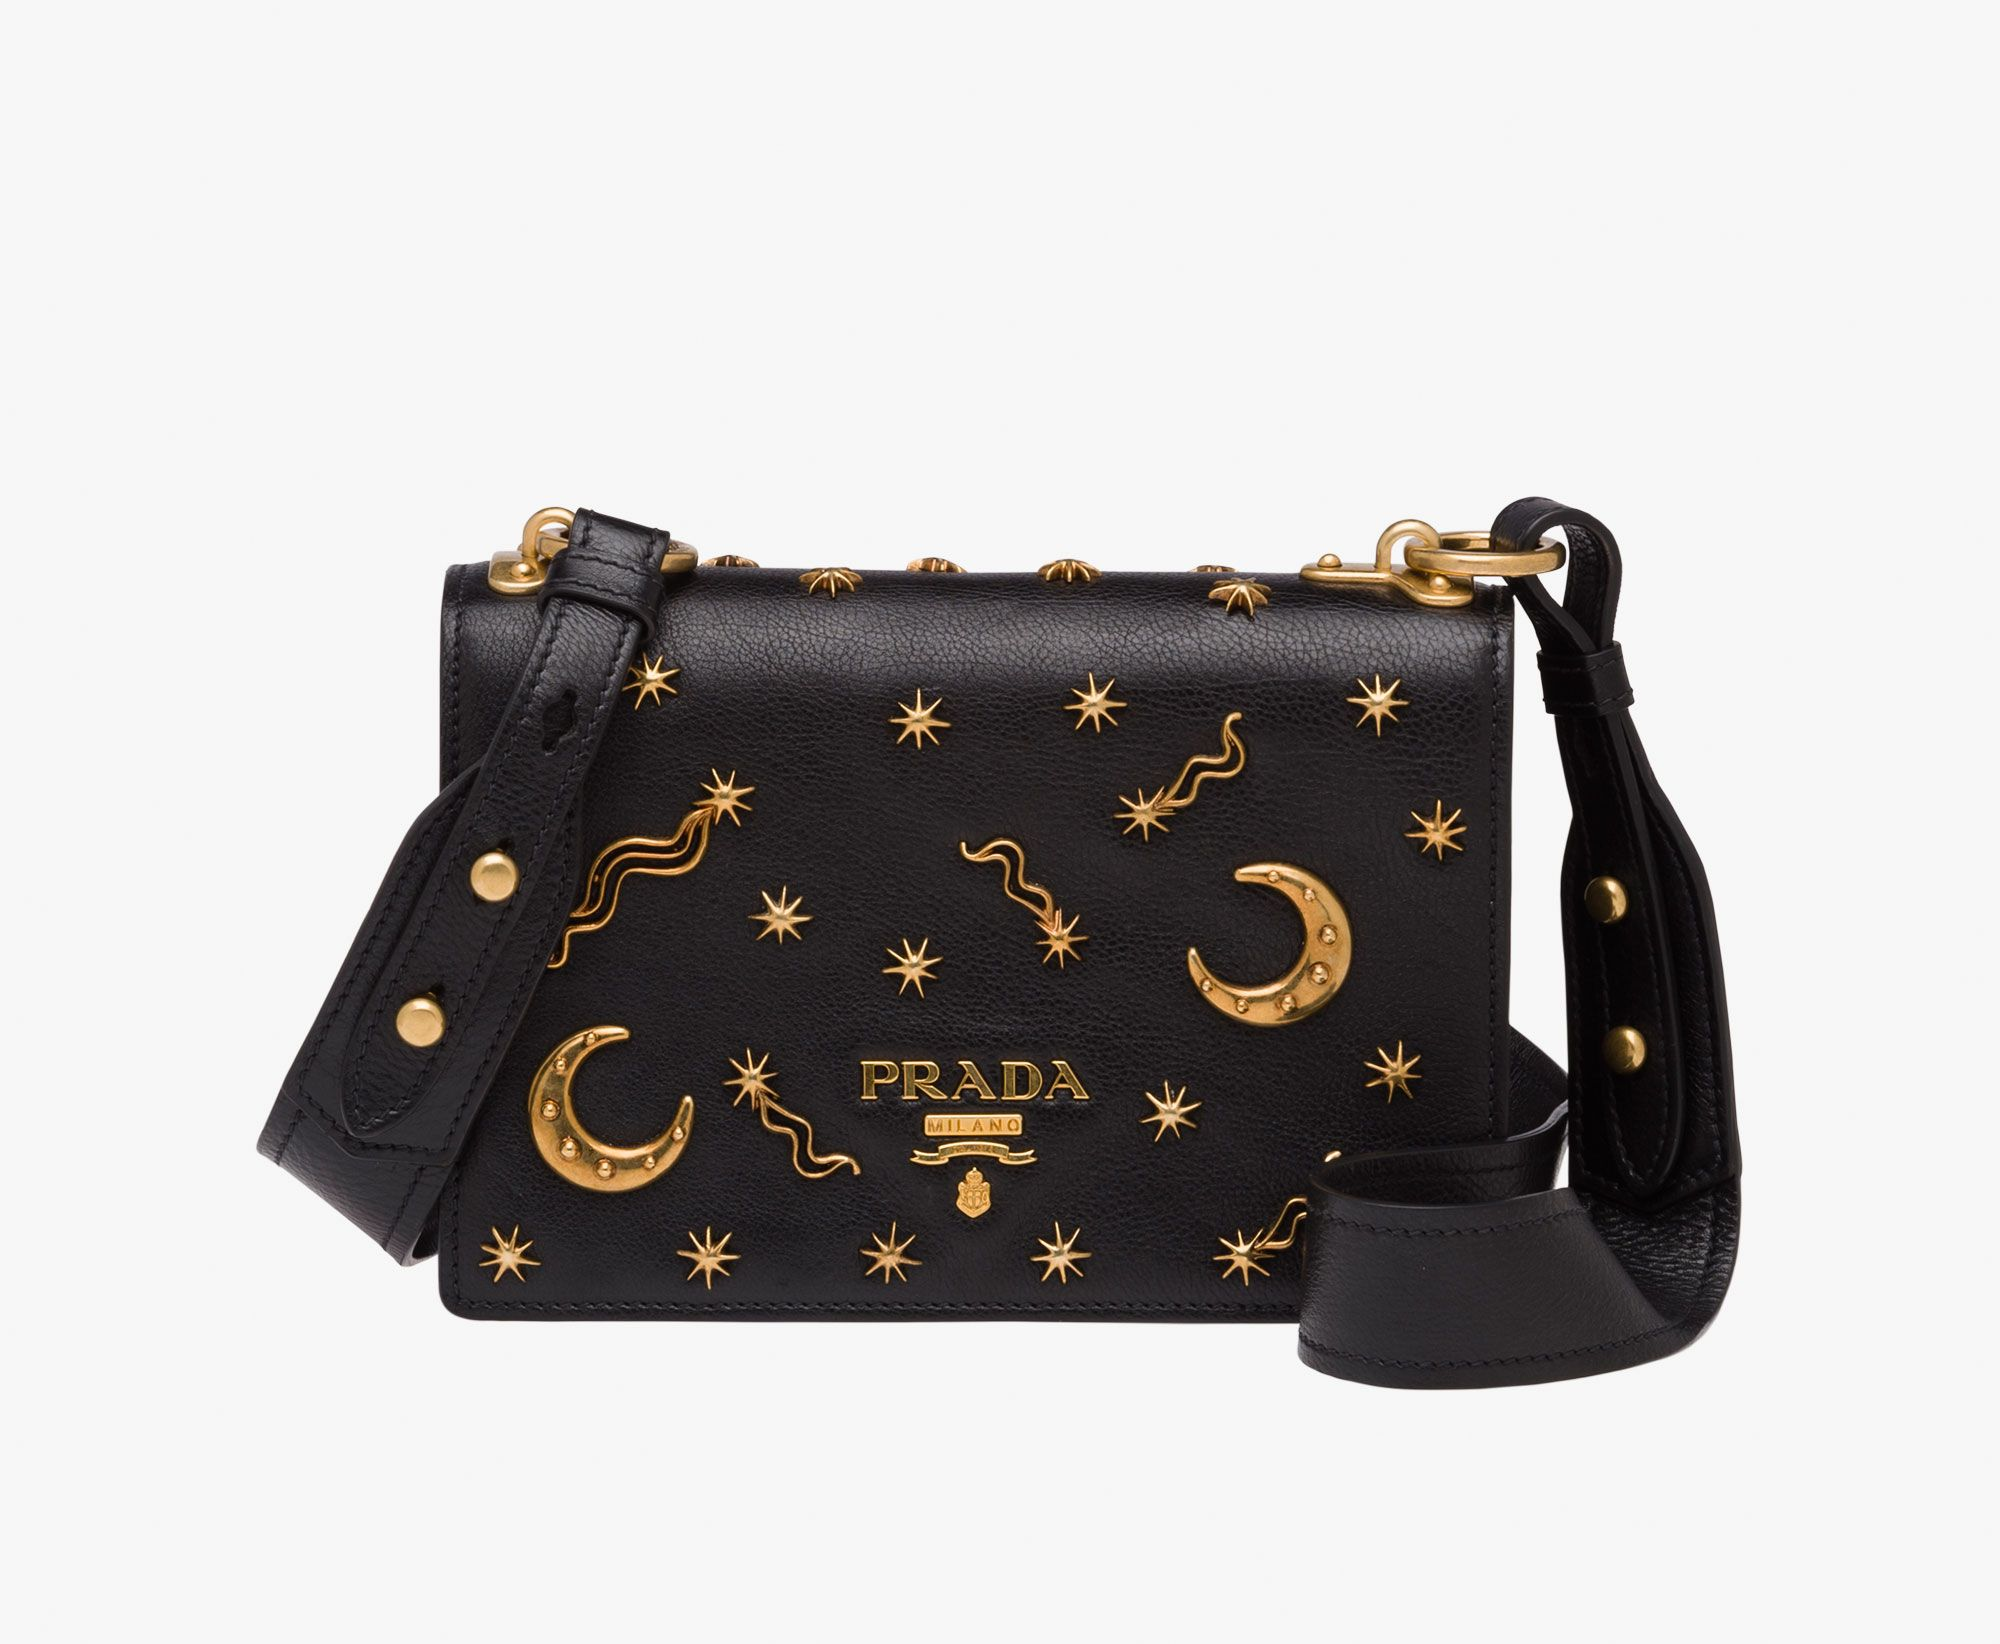 f28a46feb7eb Calf leather shoulder bag embellished with star and moon appliqués Leather…